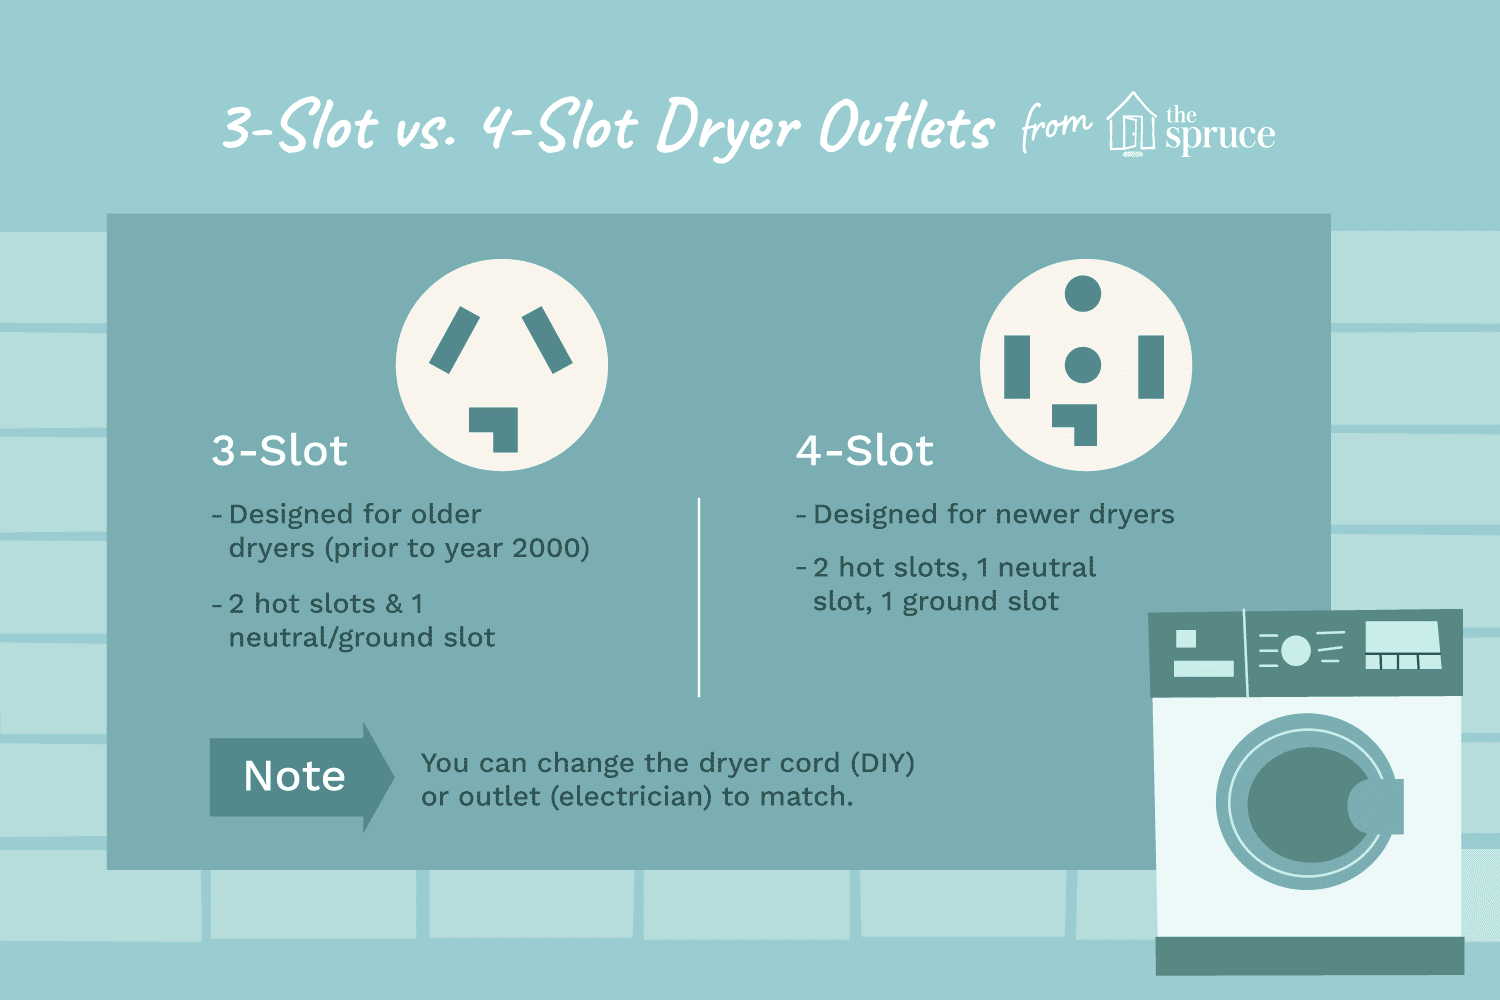 hight resolution of 3 and 4 slot dryer